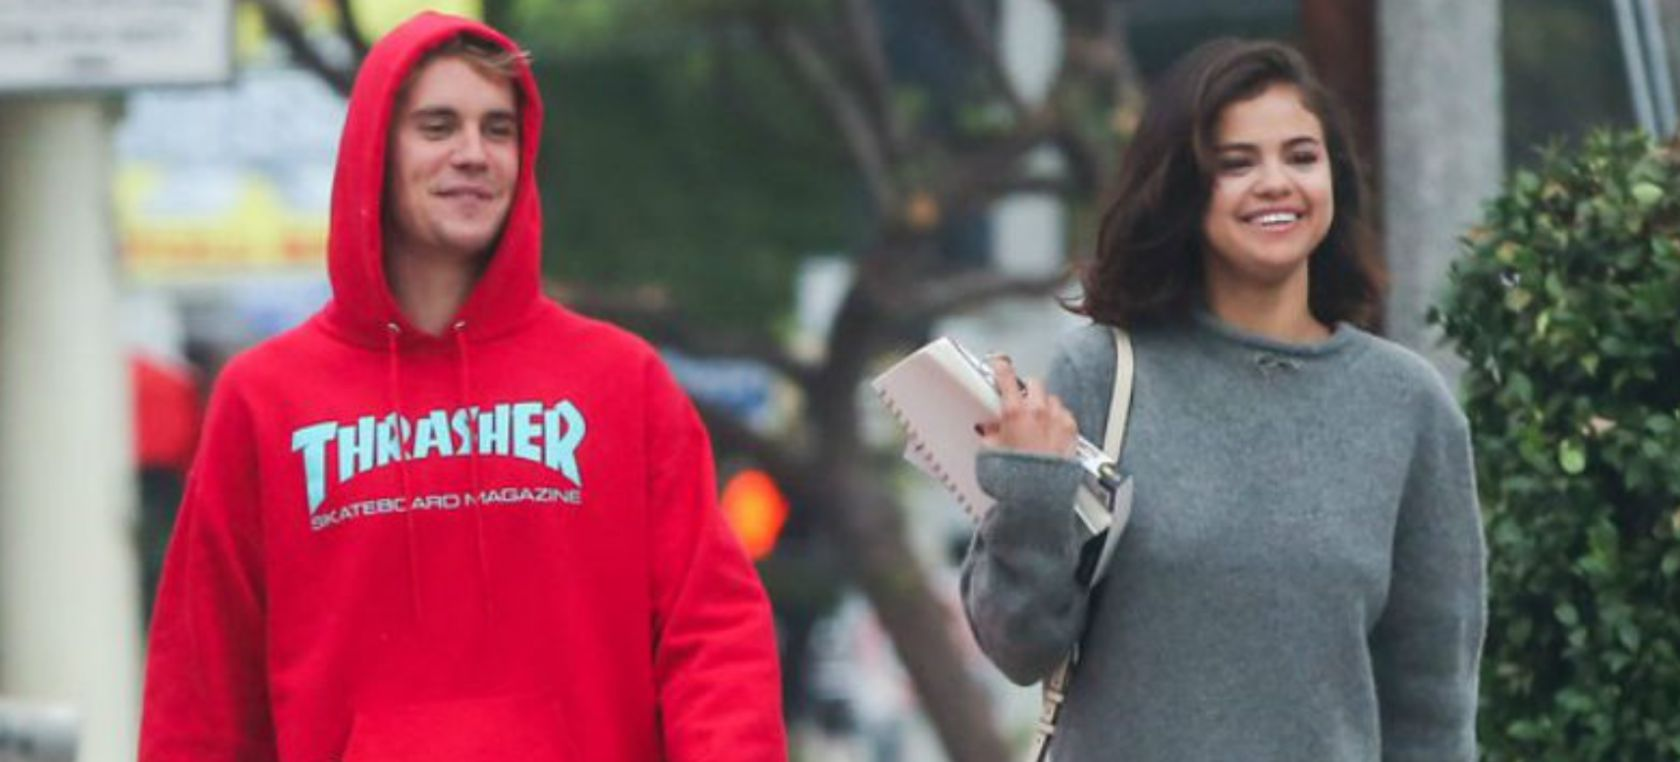 Are justin bieber and selena gomez still dating 2018